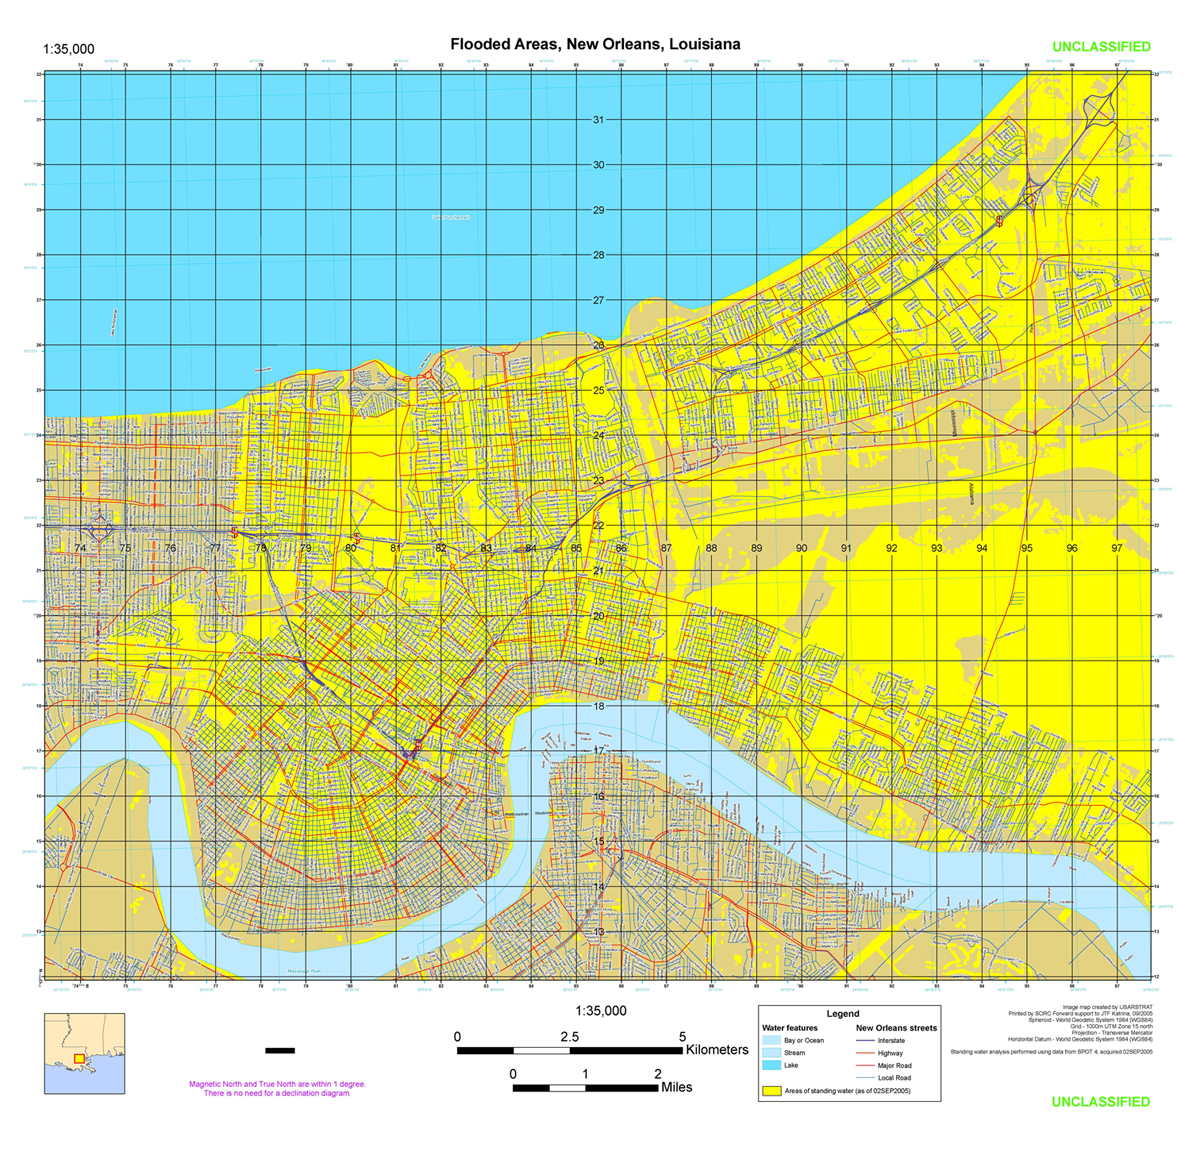 Hurricane Katrina New Orleans Map.Hurricane Katrina Maps Perry Castaneda Map Collection Ut Library